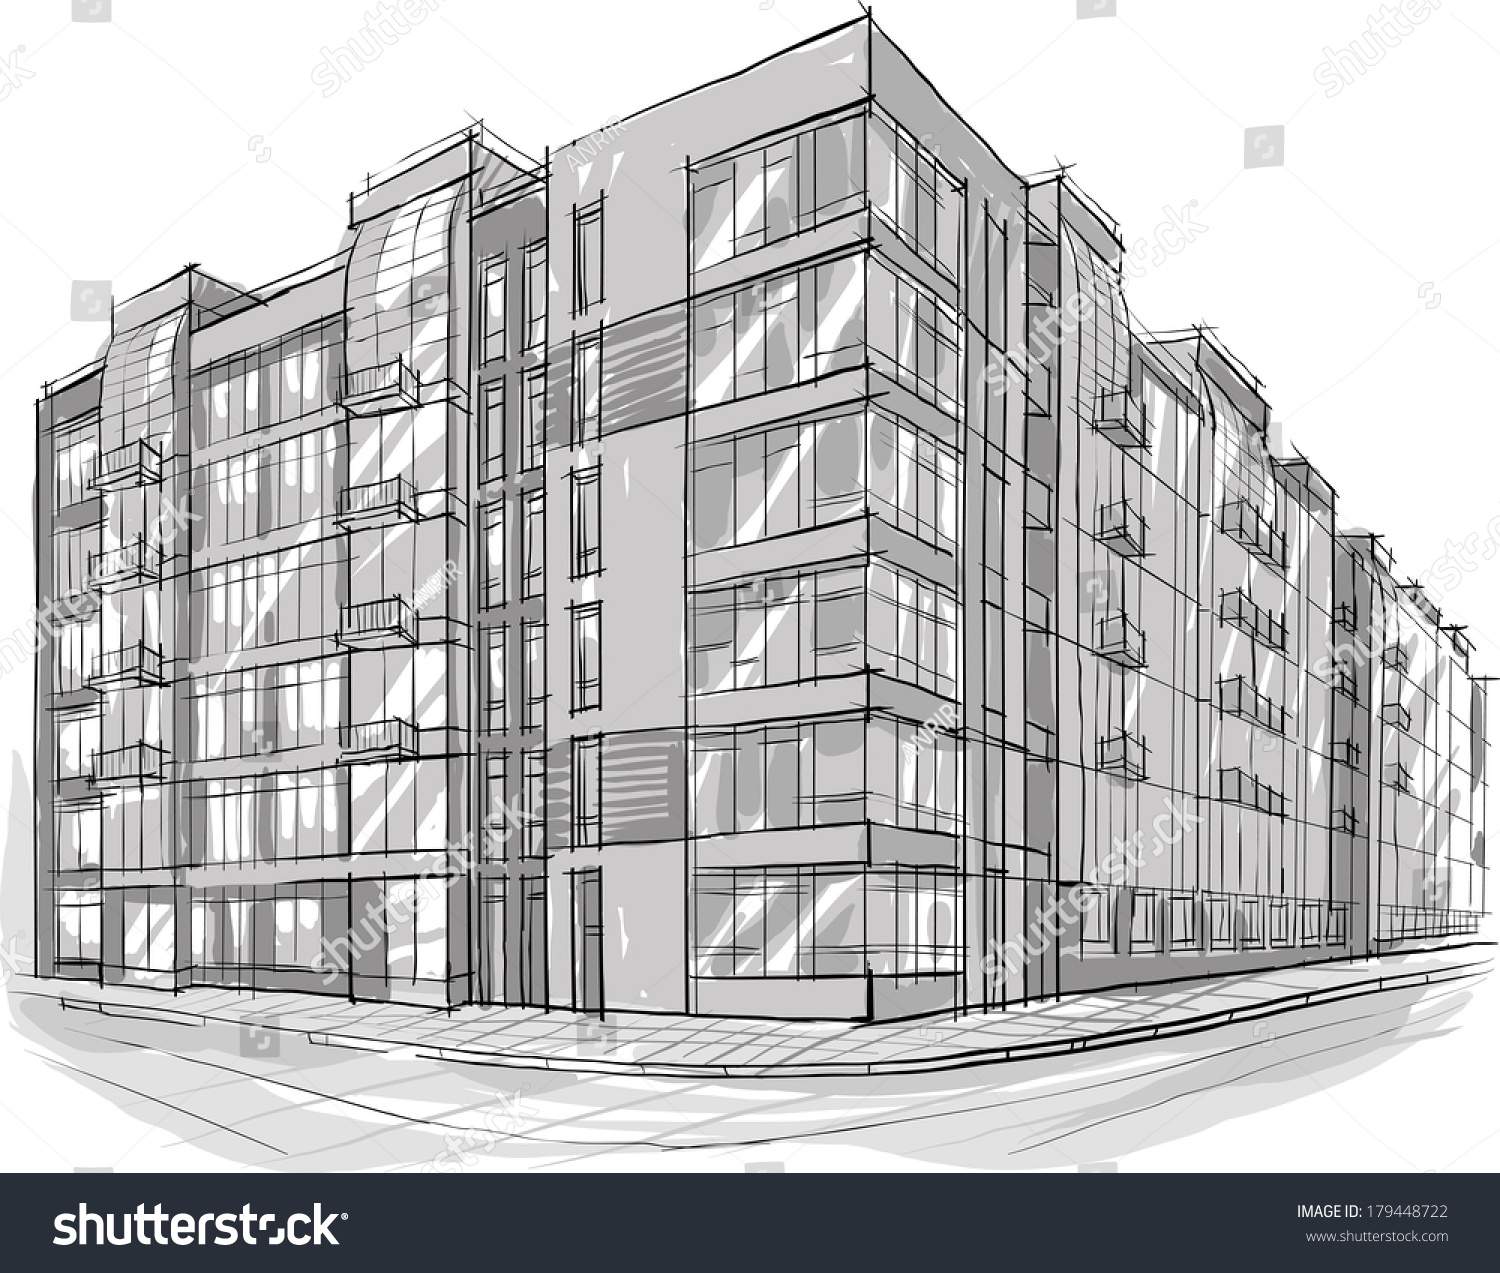 Architecture Sketch Drawing Building City Stock Vector Royalty Free